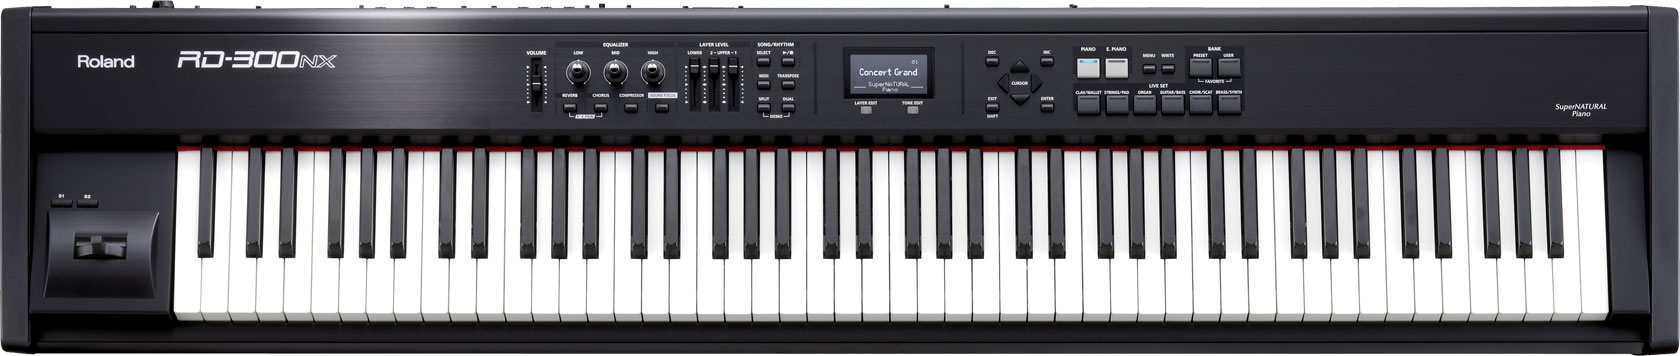 Roland - RD-300NX | Digital Piano